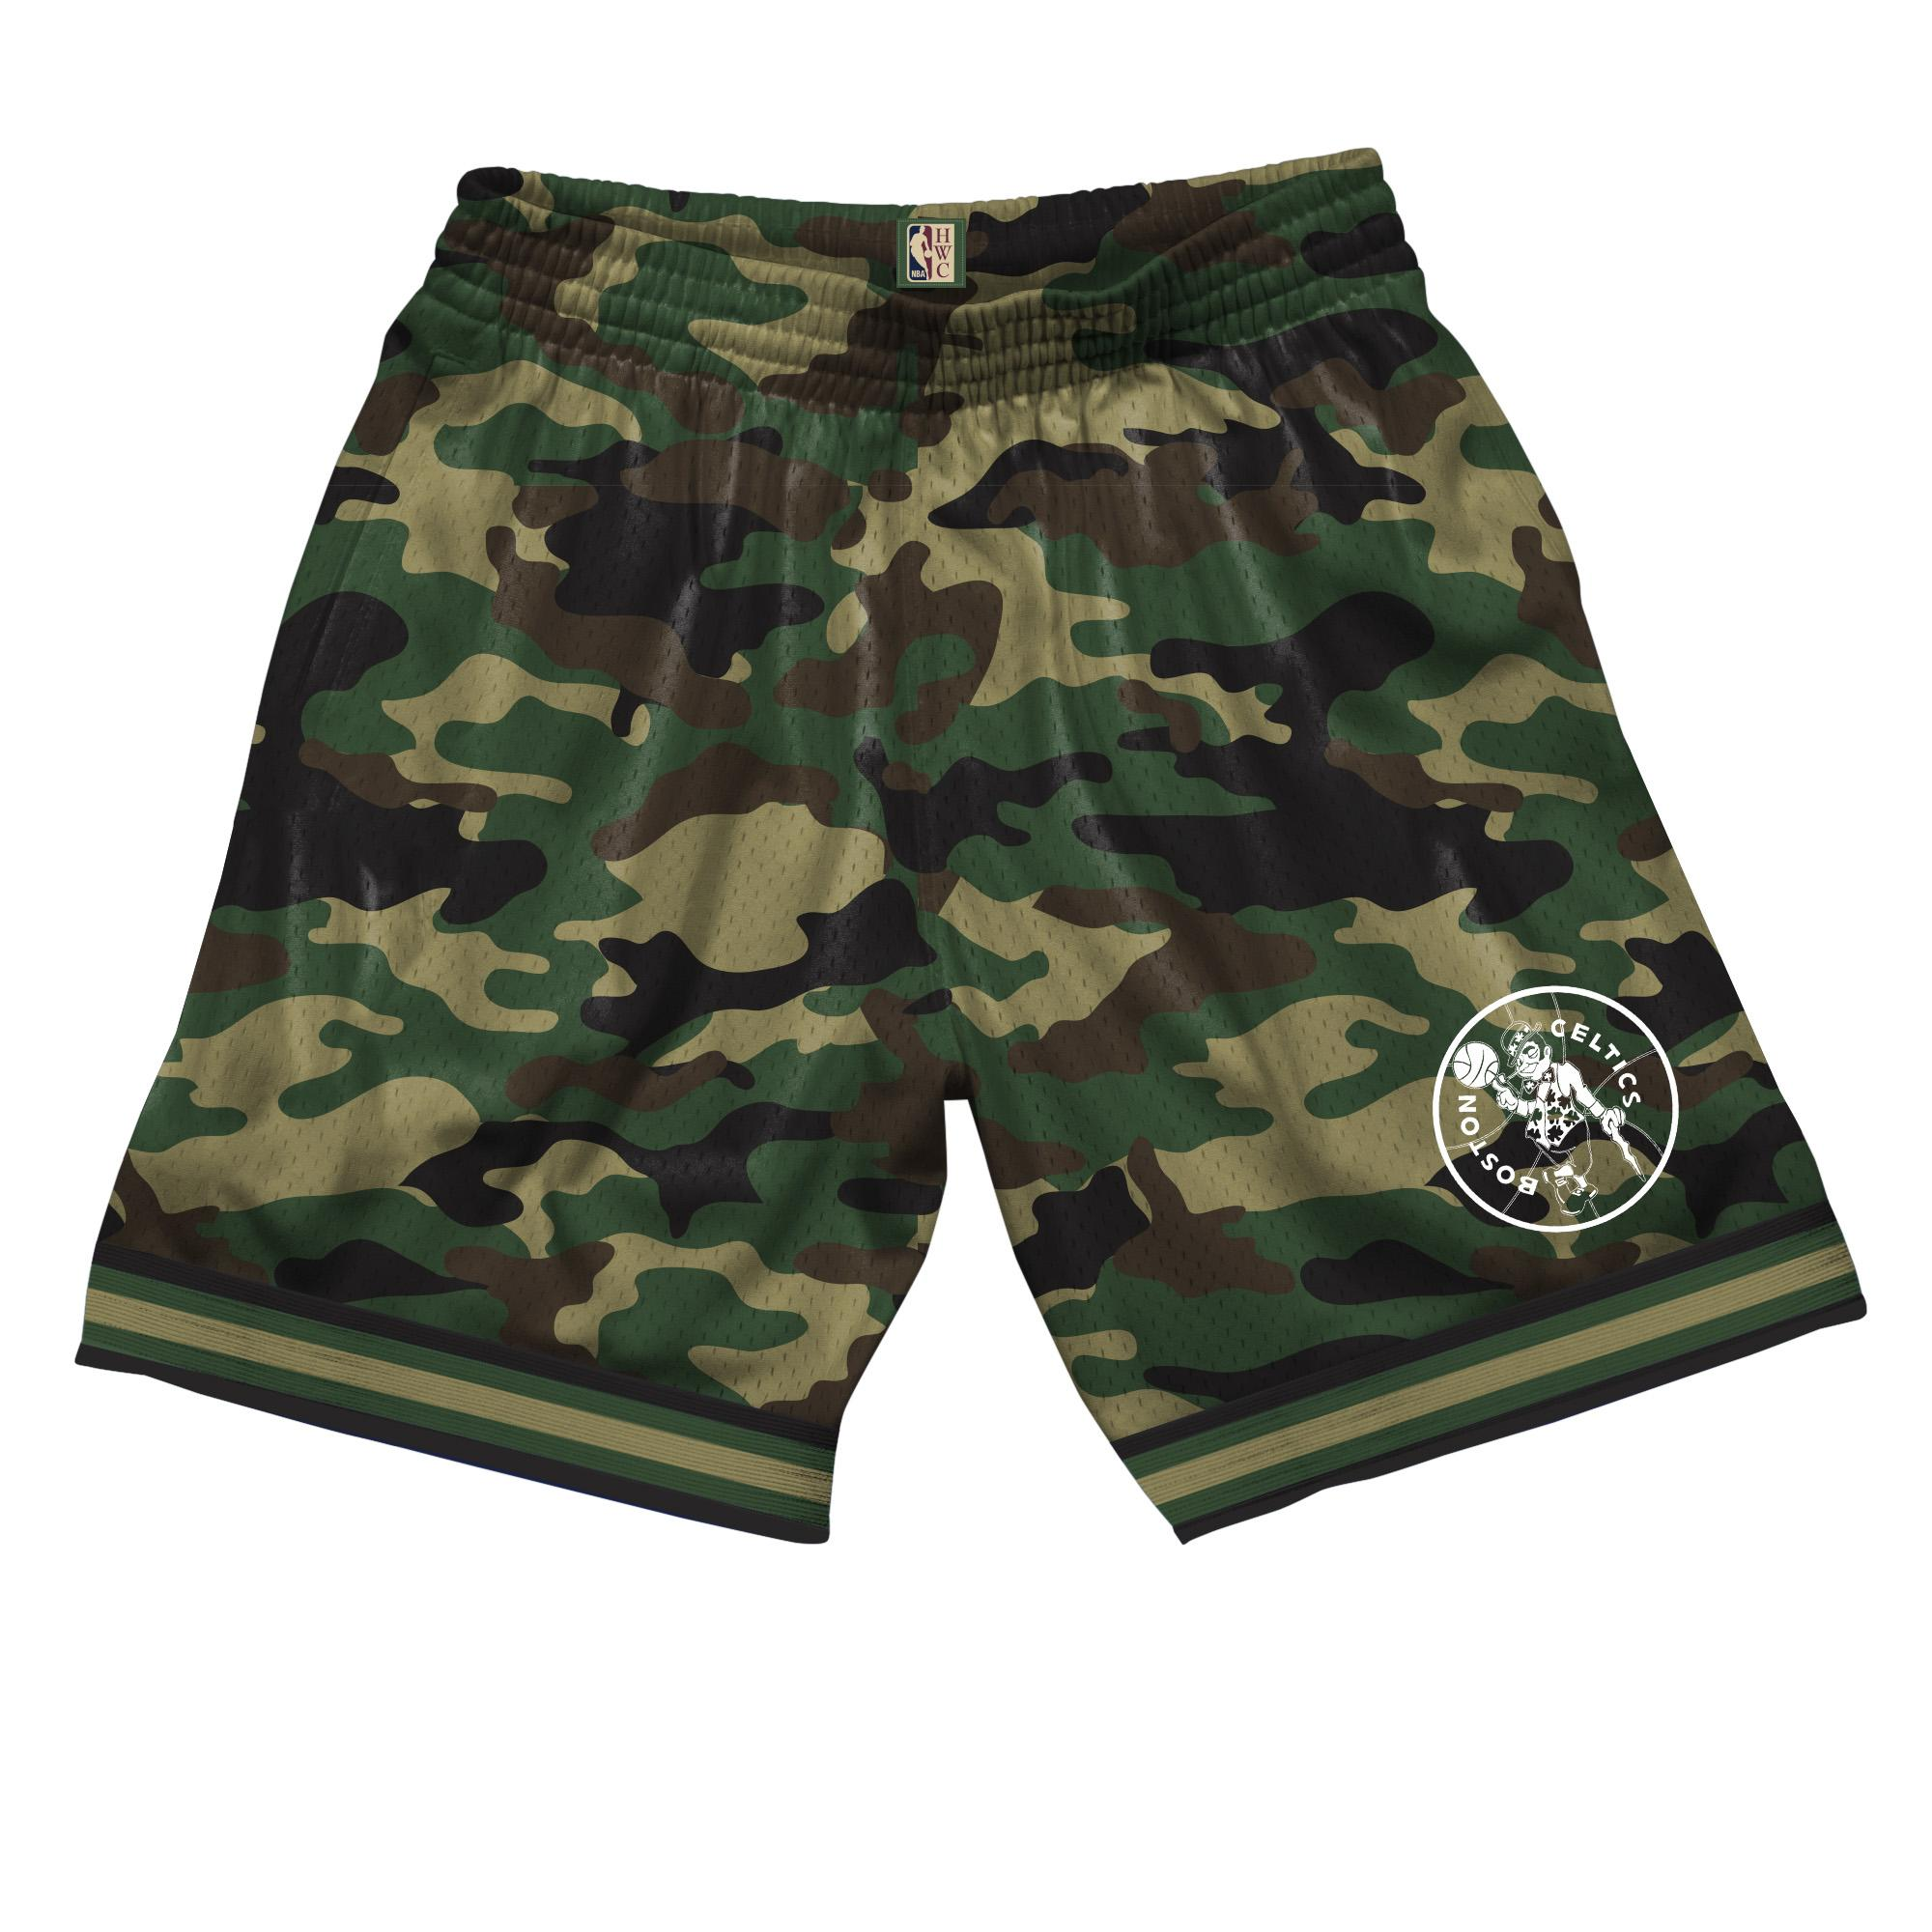 b758f0f8a NBA Camo Mesh Shorts Boston Celtics £55.00